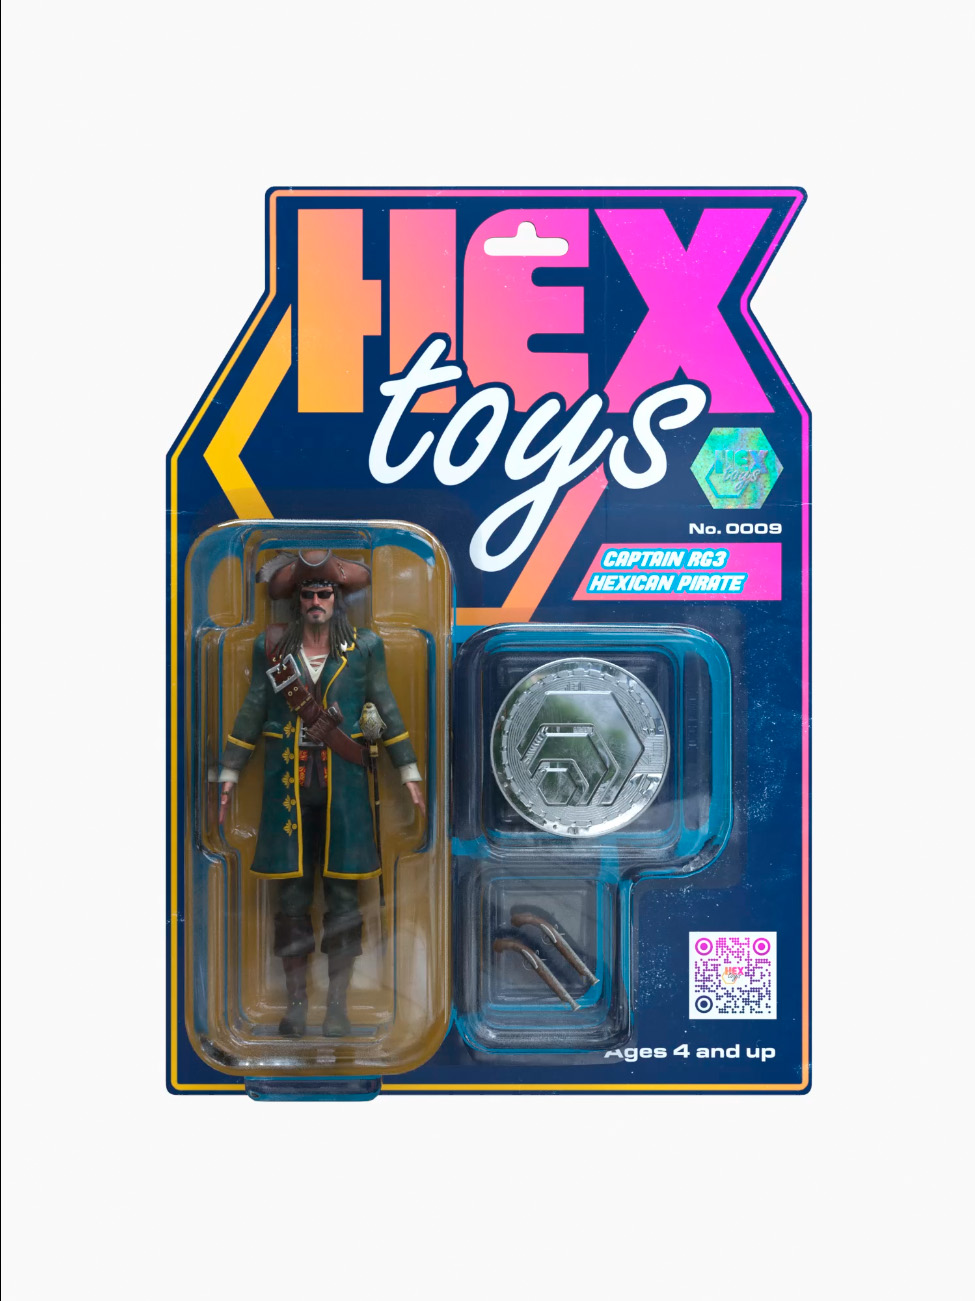 CAPTAIN RG3 HEXICAN PIRATE